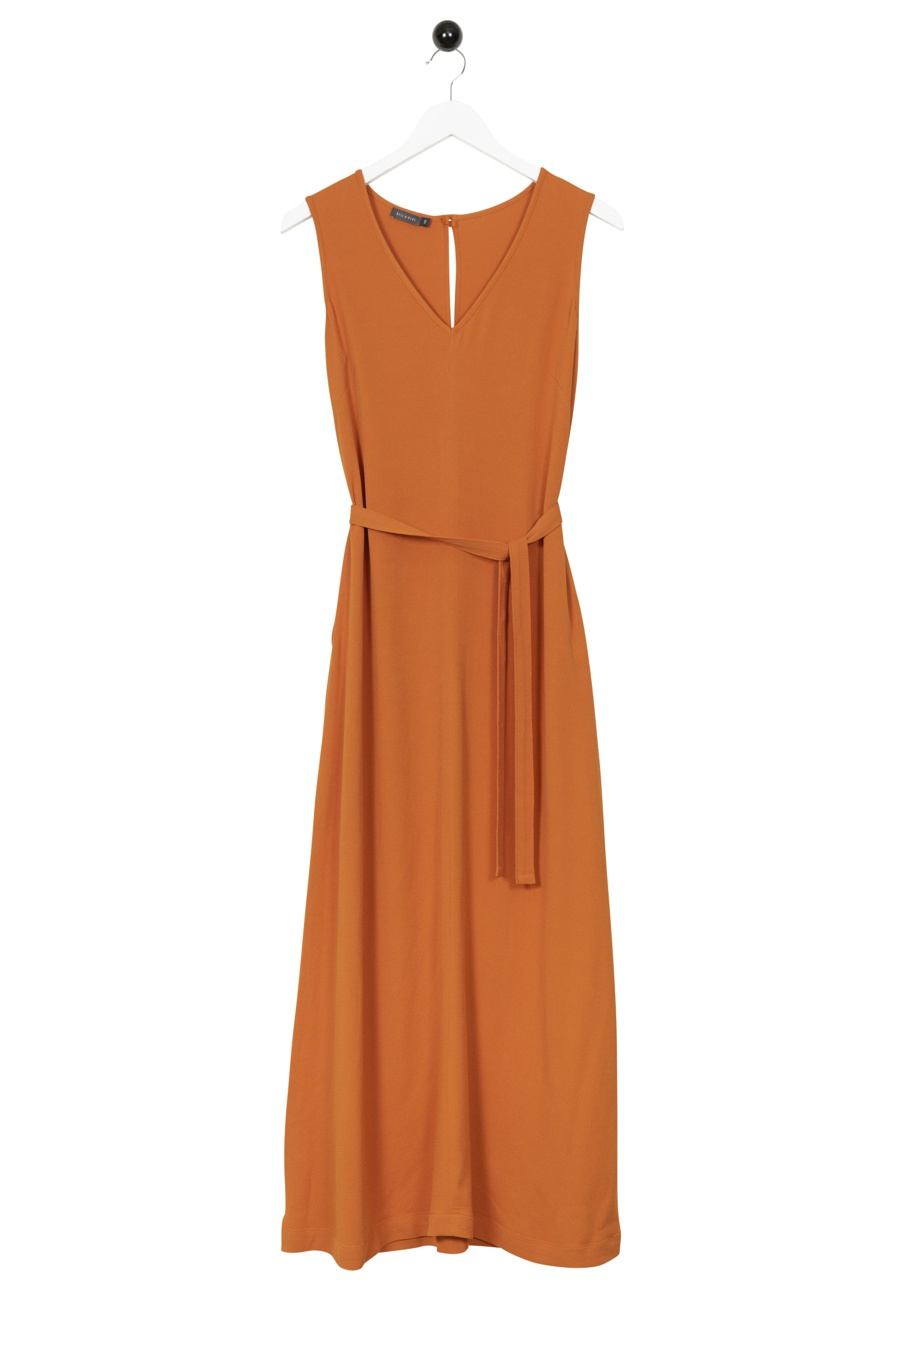 Lyon Dress Sleeveless